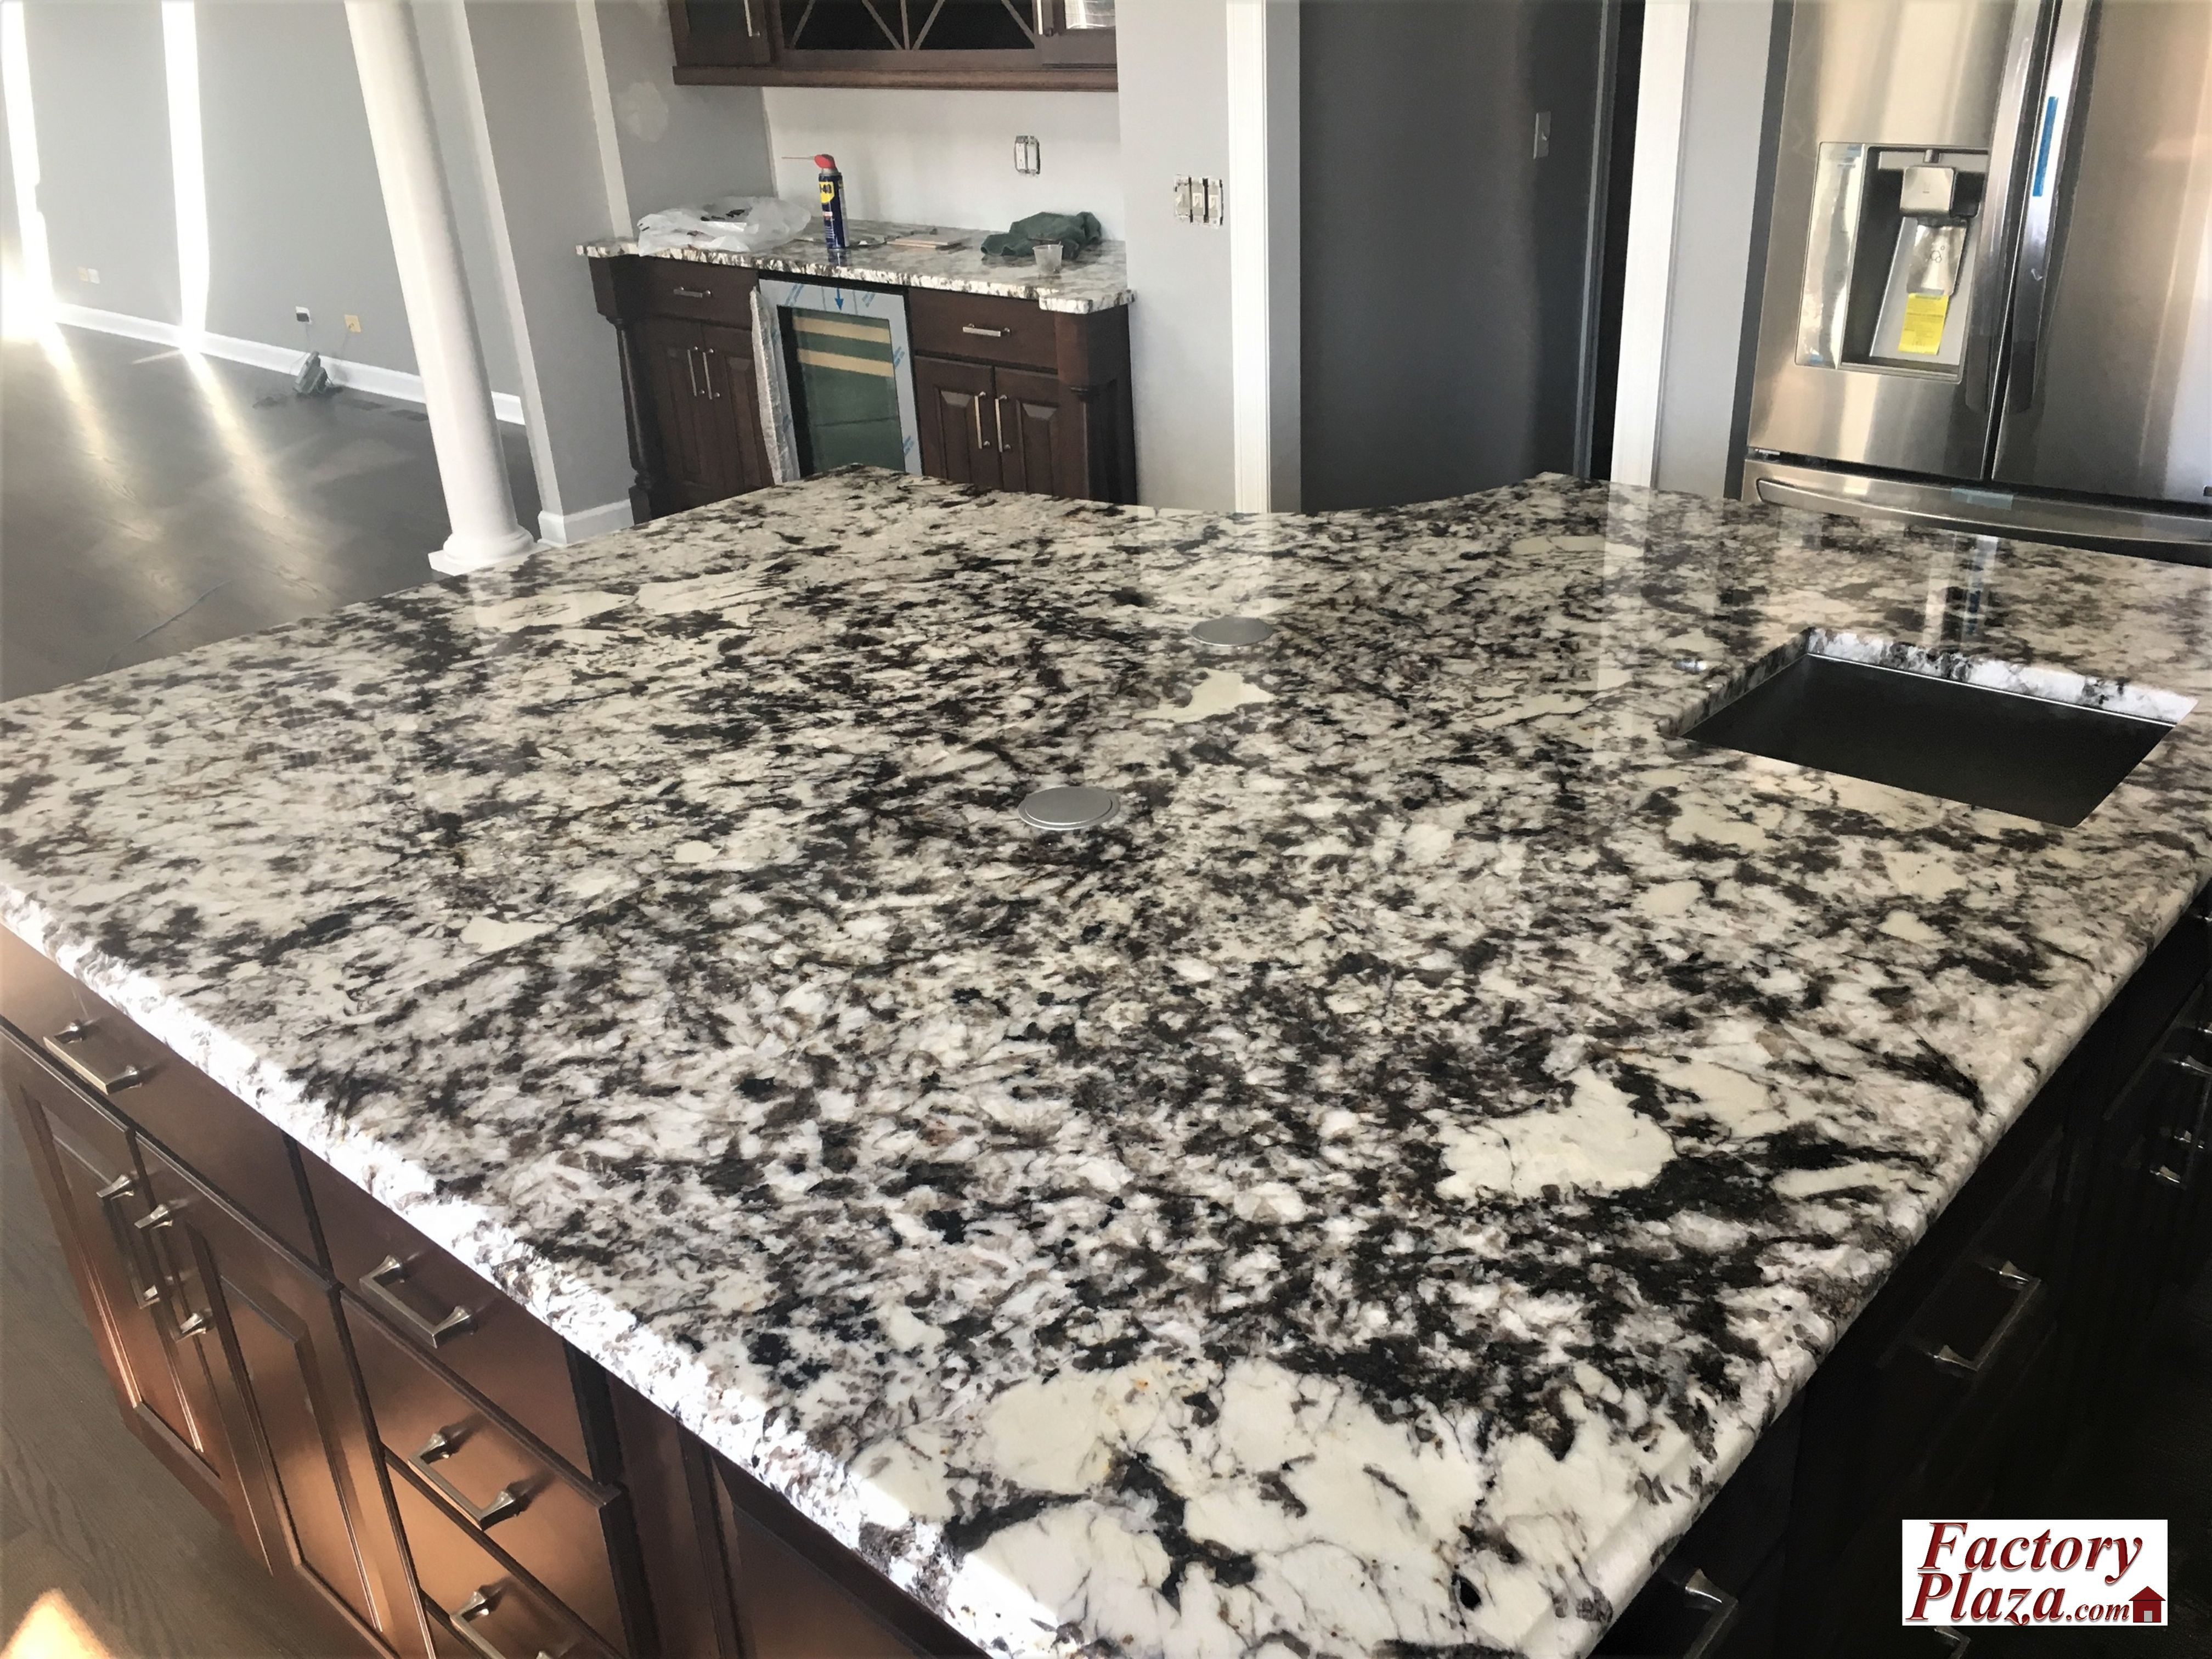 Factory Plaza measure, fabricate and install Granite